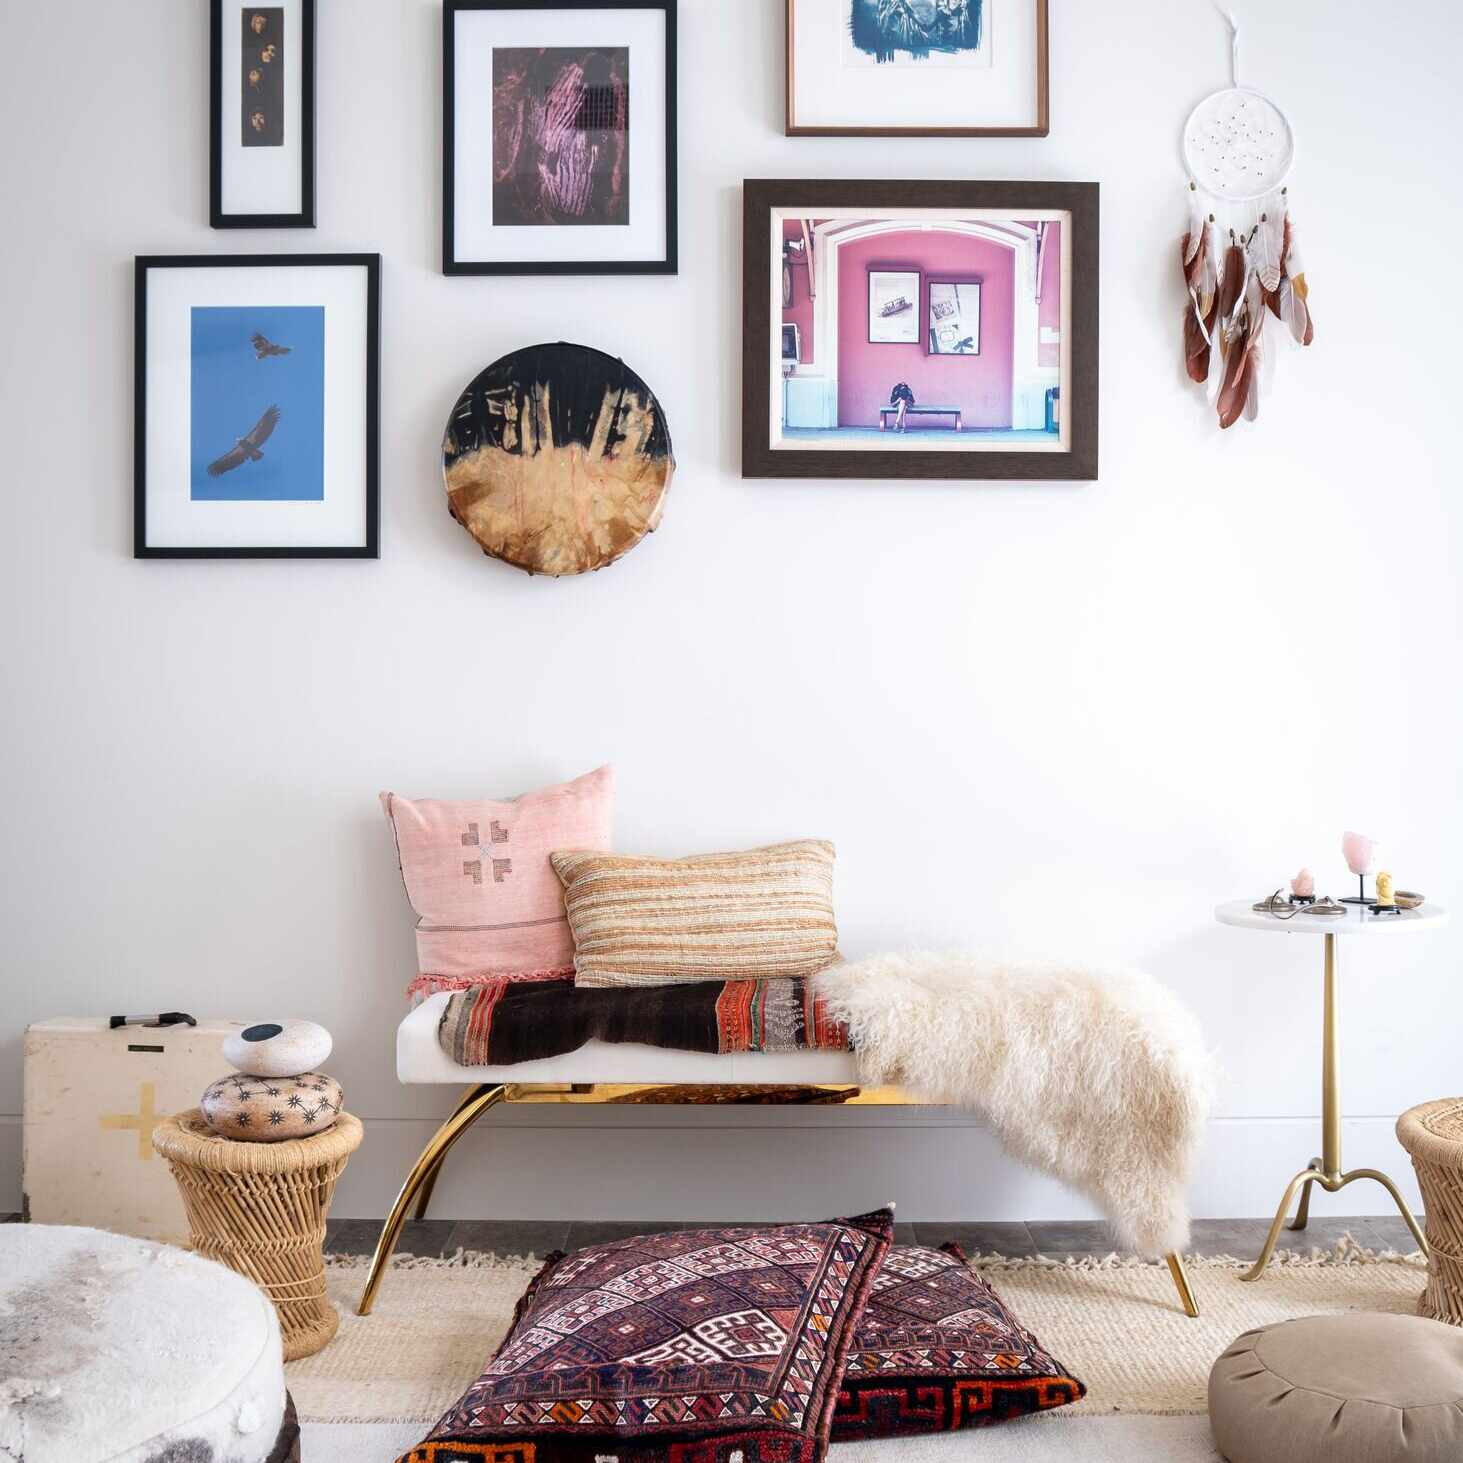 Global eclectic styled living area with bench, throw pillows, and art